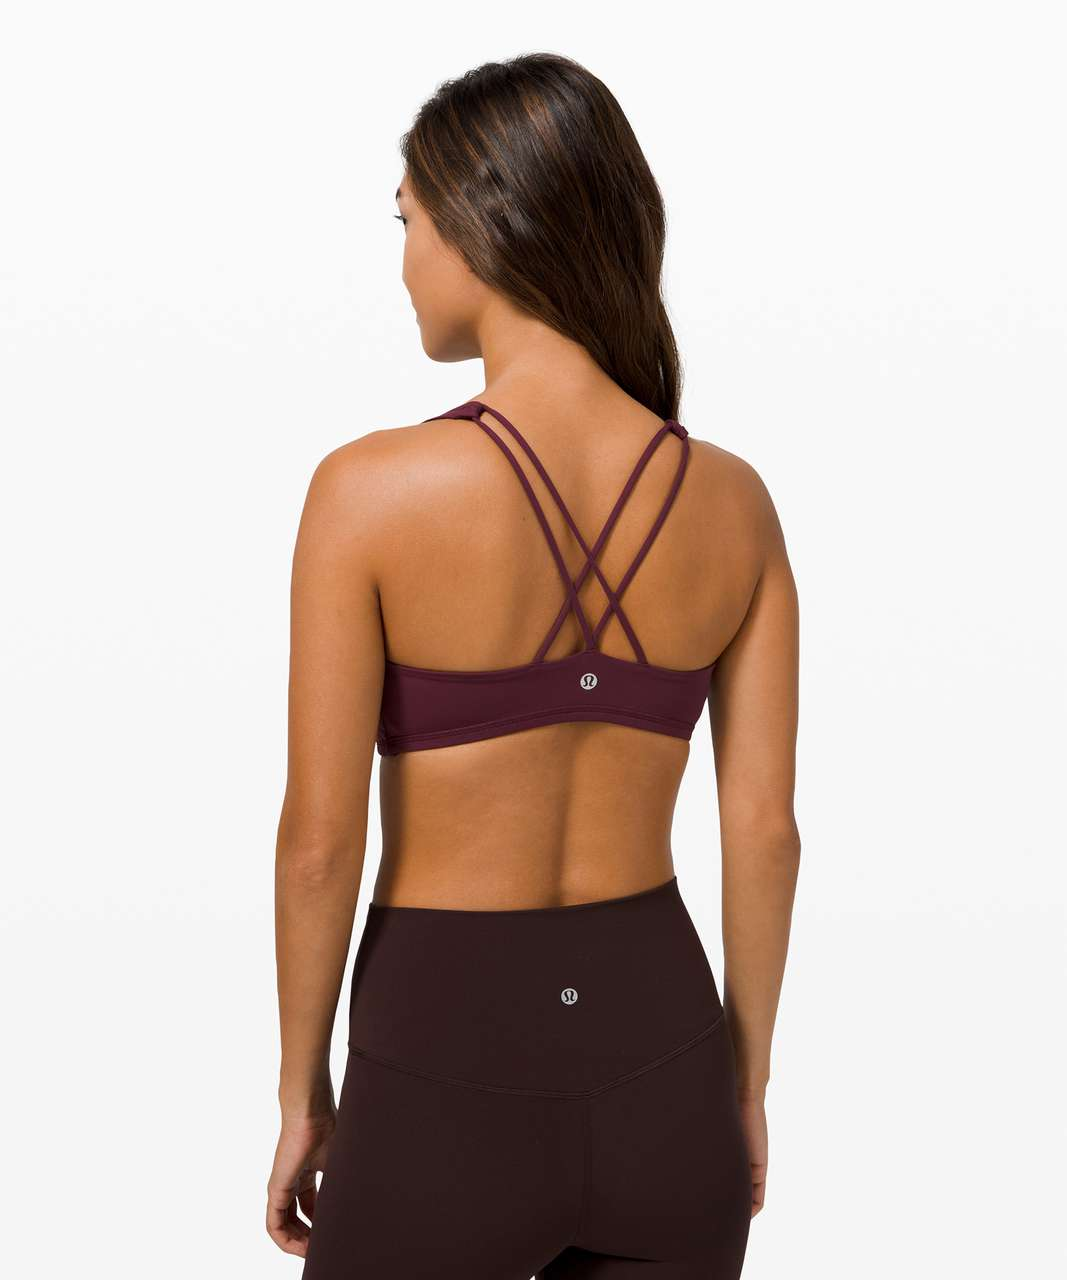 Lululemon Free To Be Bra *Light Support, A/B Cup - Cassis